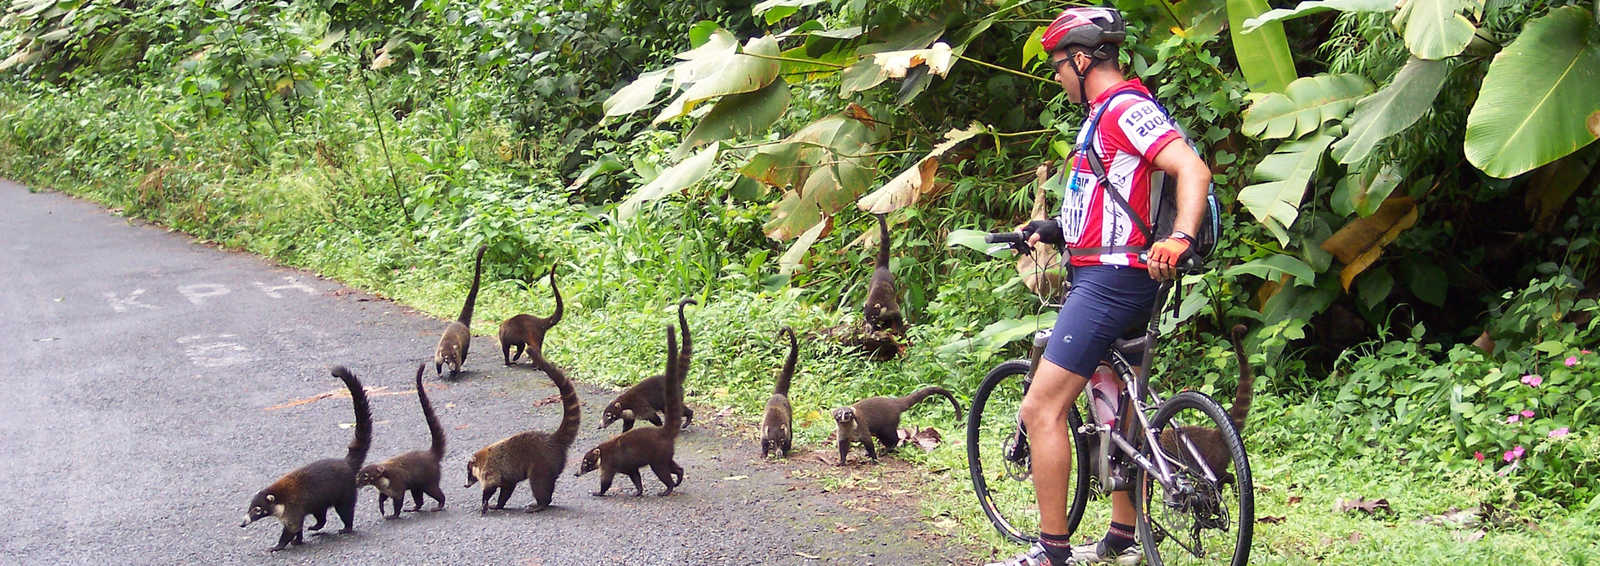 Coatimundi crossing a jungle road with cyclist, Costa Rica